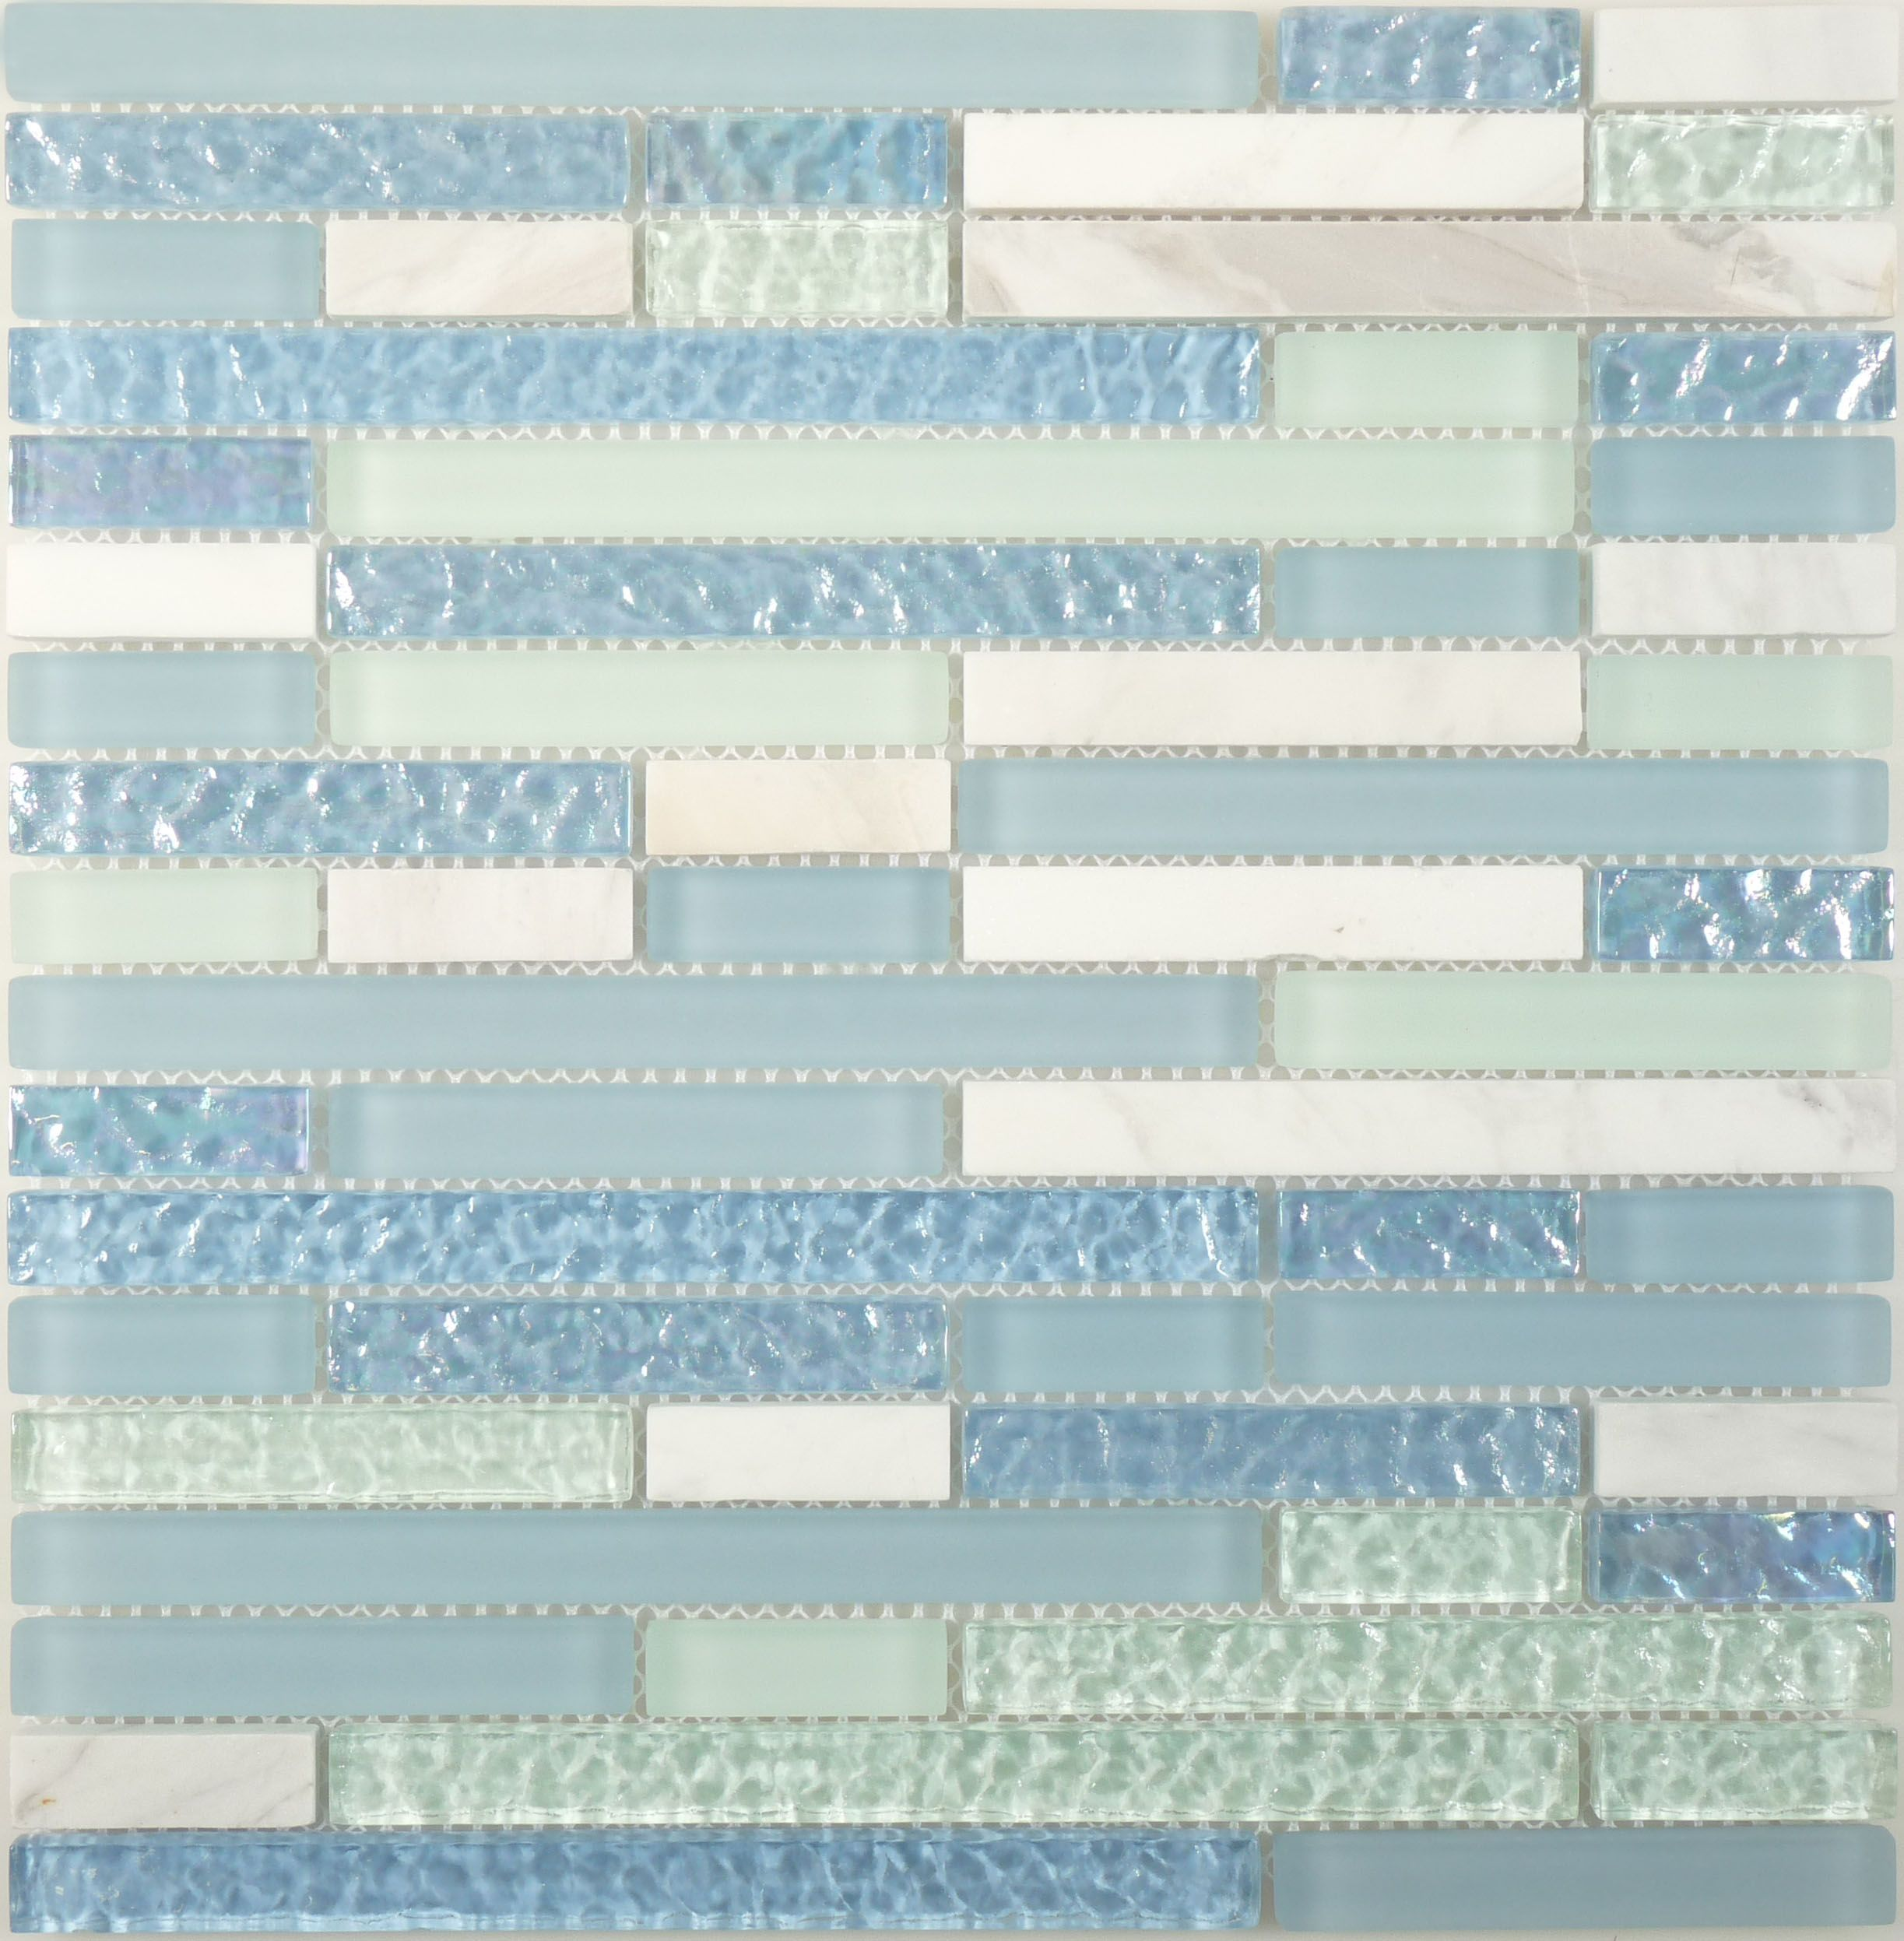 Isi Linea Random Bricks Blue Green Wavy Glossy Frosted Iridescent Blue Glass And Stone Iridescent Glass Tiles Blue Glass Tile Blue Tile Backsplash